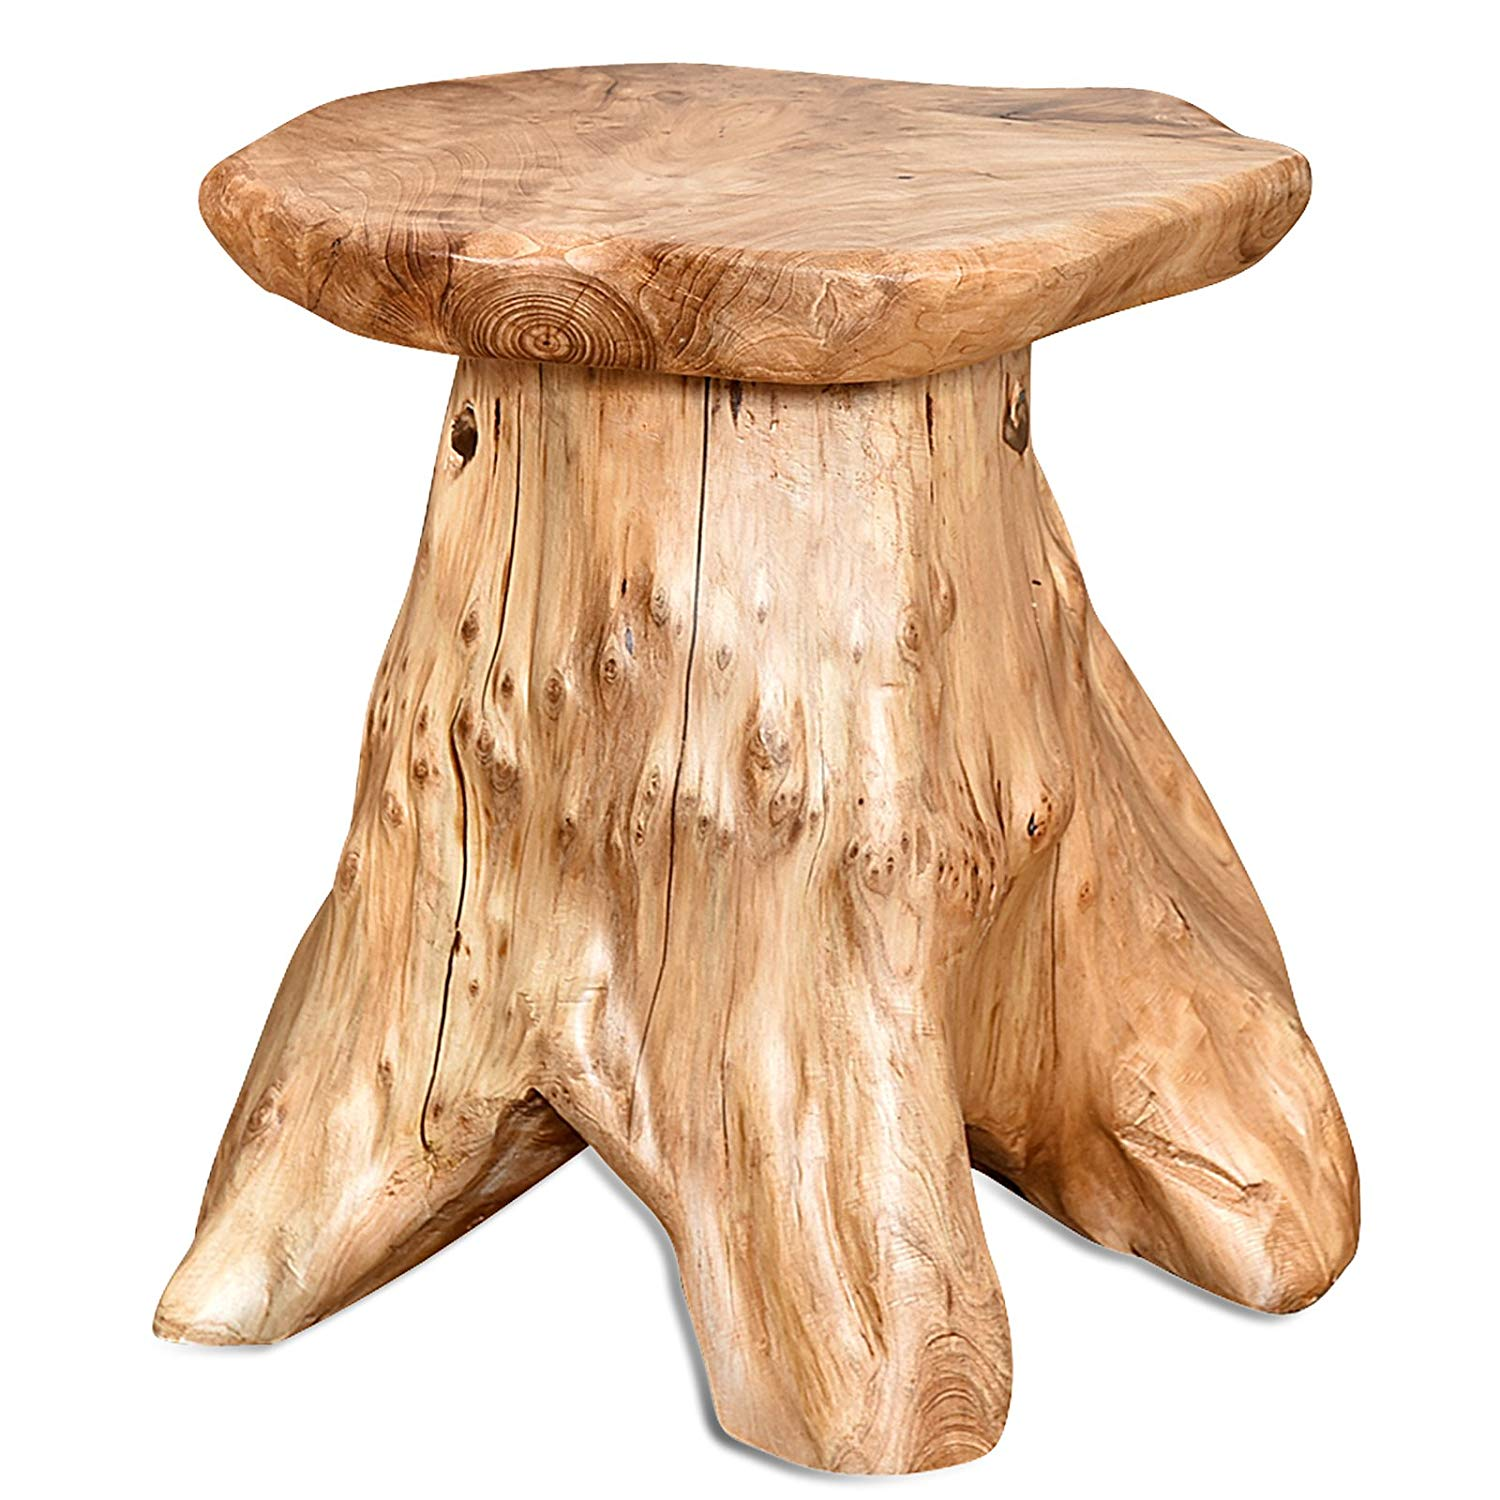 table protector mat the perfect cool wood stump end ideas welland live edge organic cedar stool for indoor mbtl outdoor mushroom garden tree target shaped coffee cherry and tables